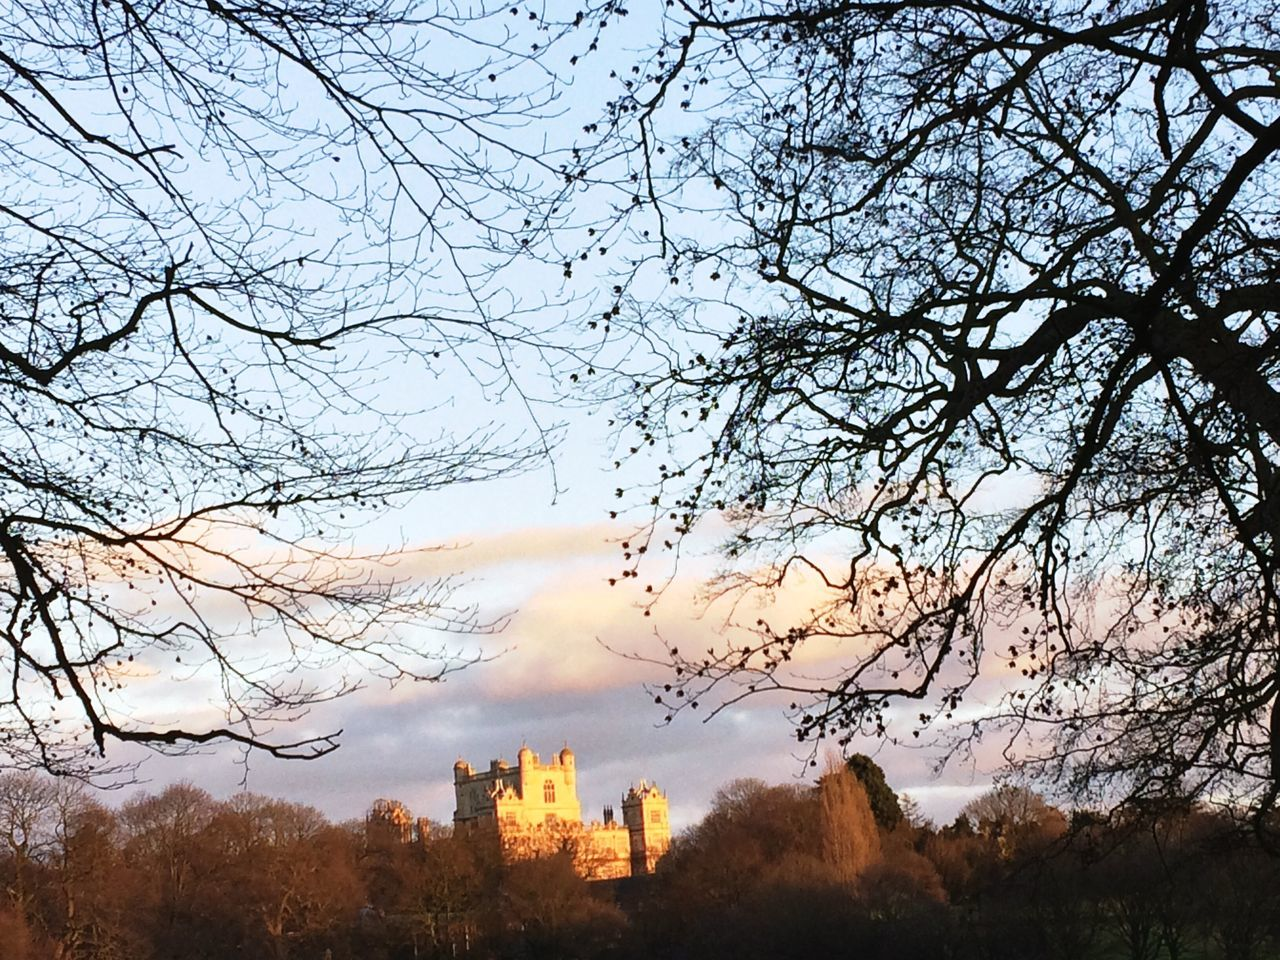 Tree Building Exterior Architecture Sky Built Structure Nature Wollaton Hall Outdoors Bare Tree Beauty In Nature Sunset Branch Day Water Wollatonpark Clouds